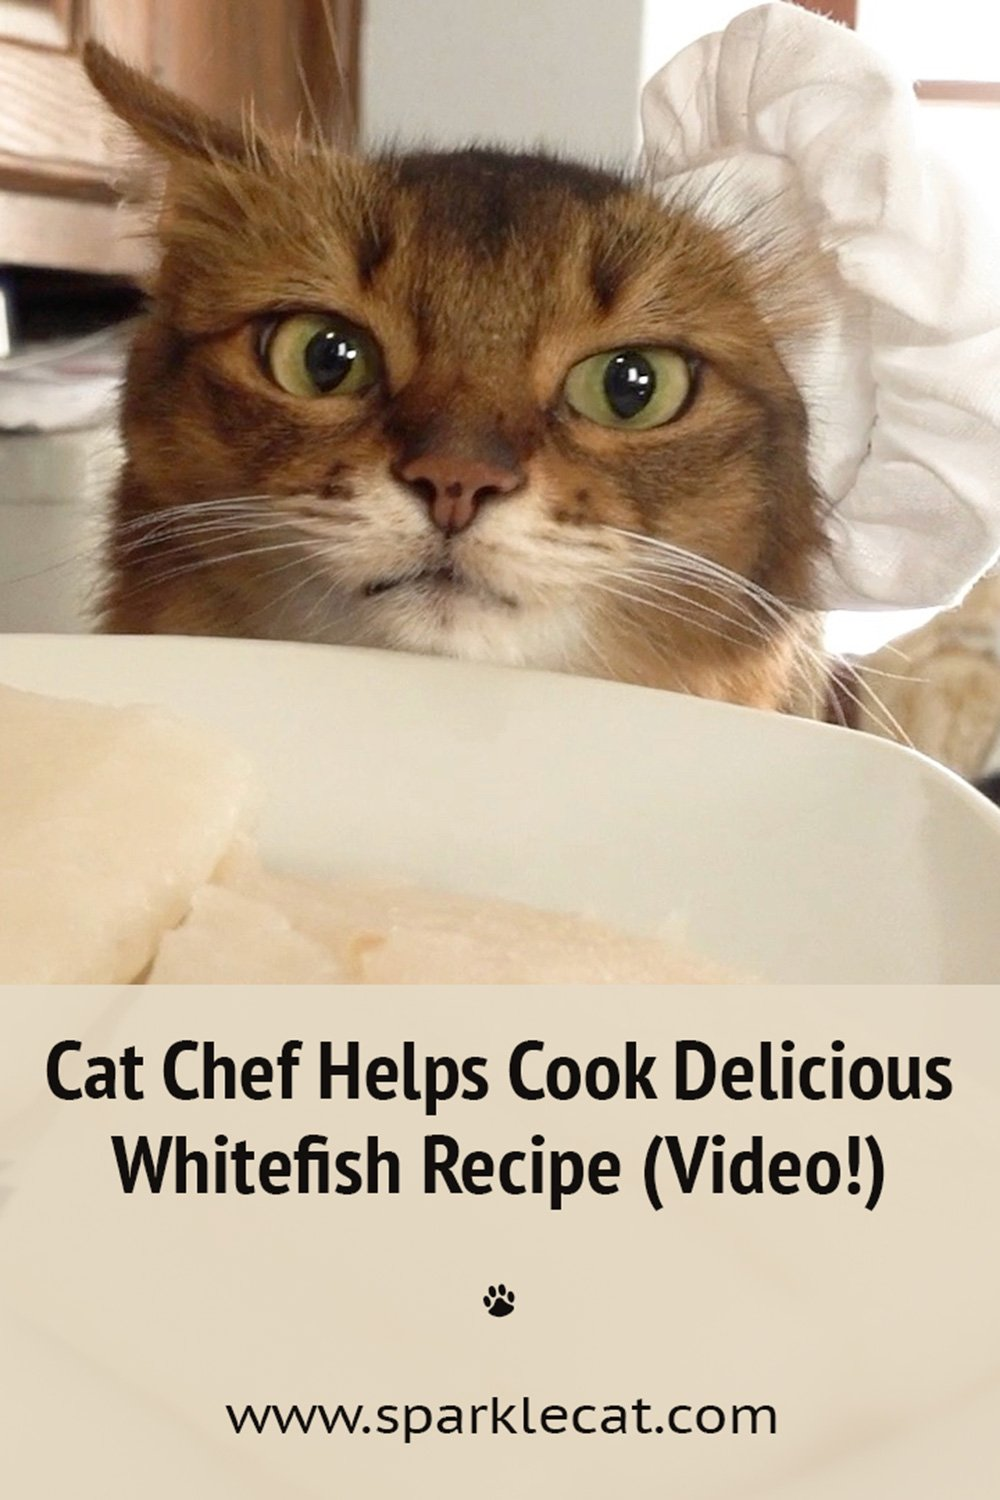 A Delicious Whitefish Recipe... Based on Fancy Feast Cat Food!